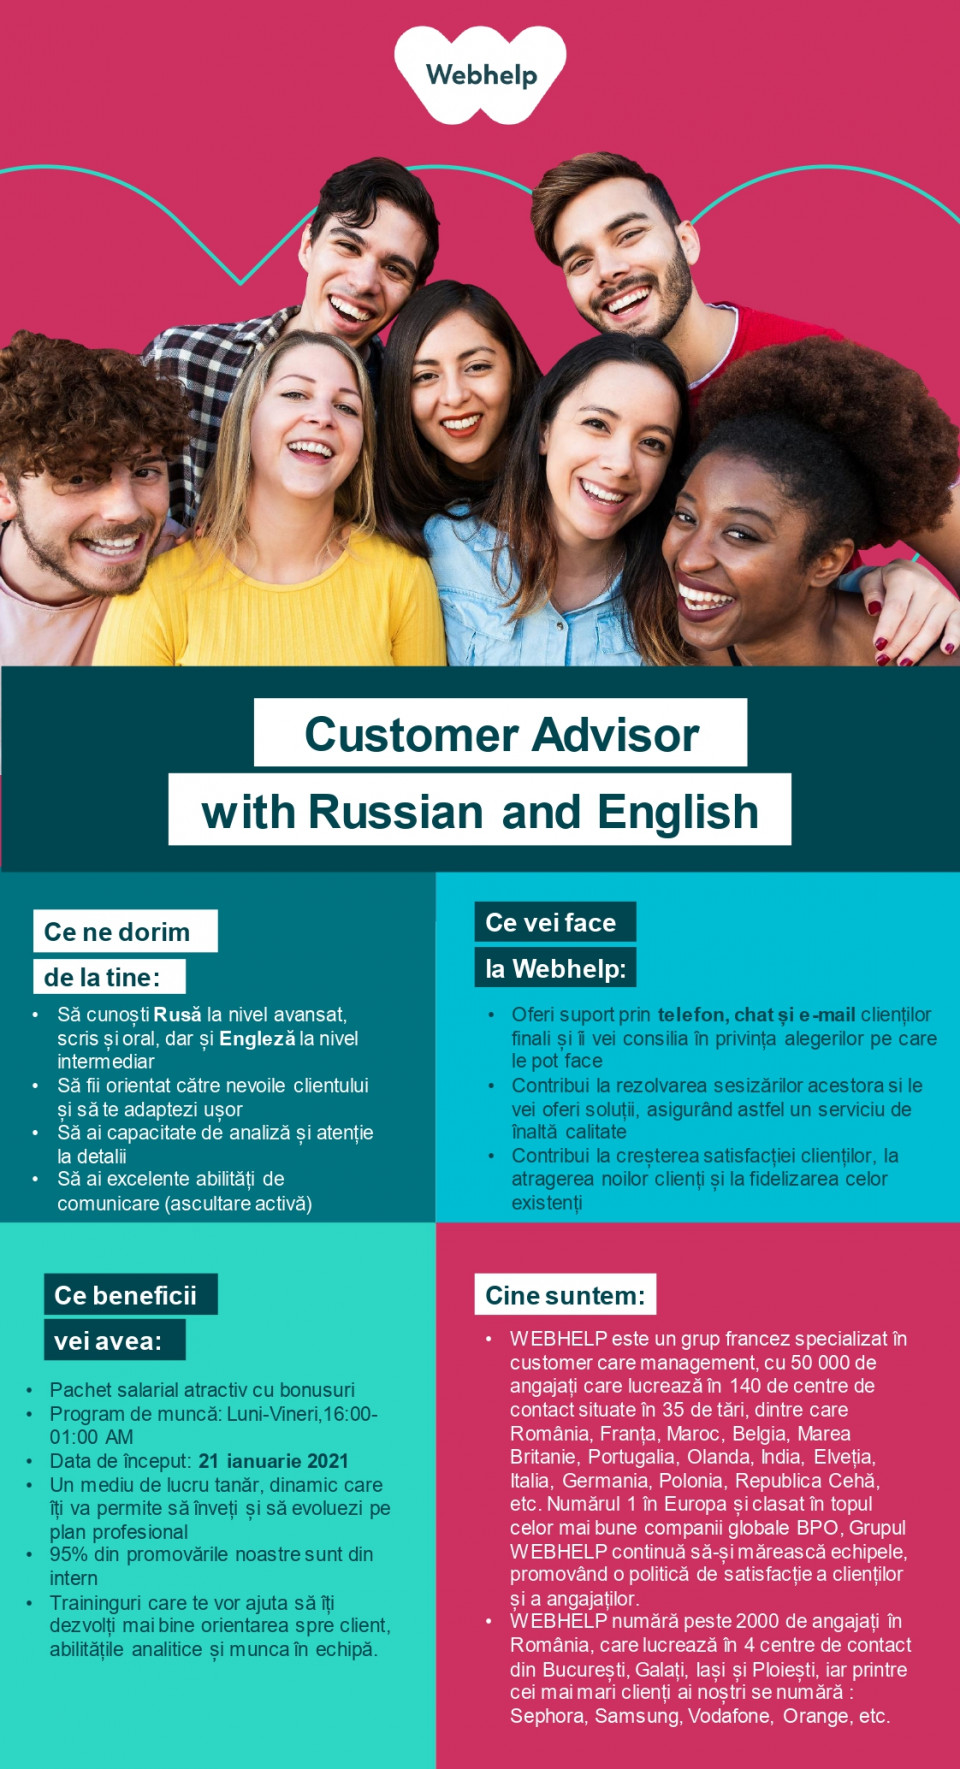 Customer Advisor with Russian and English  Webhelp is a 50,000 people-strong global leader in business process outsourcing (BPO). We continue to specialise in customer experience but our capabilities extend across voice, social and digital channels. Our outsourced services have also expanded to include payment management, sales and marketing services.We engineer customer experiences on behalf of some of the world's most progressive brands and through our transformational outsourcing proposition we can drive performance improvement, deliver a real and lasting transformation in clients' operating models and deliver material financial advantage.Since its inception, Webhelp has grown significantly with more than 500 partners being served by our global teams which cross 35 countries and more than 140 customer experience hubs. In the last four years alone, our revenues have grown by more than 250%. We achieved this by investing in our people and the environment they work in, and developing the analytical and operating capability to deliver truly transformational outsourcing with solutions which meet the challenges of a now omni-channel world.